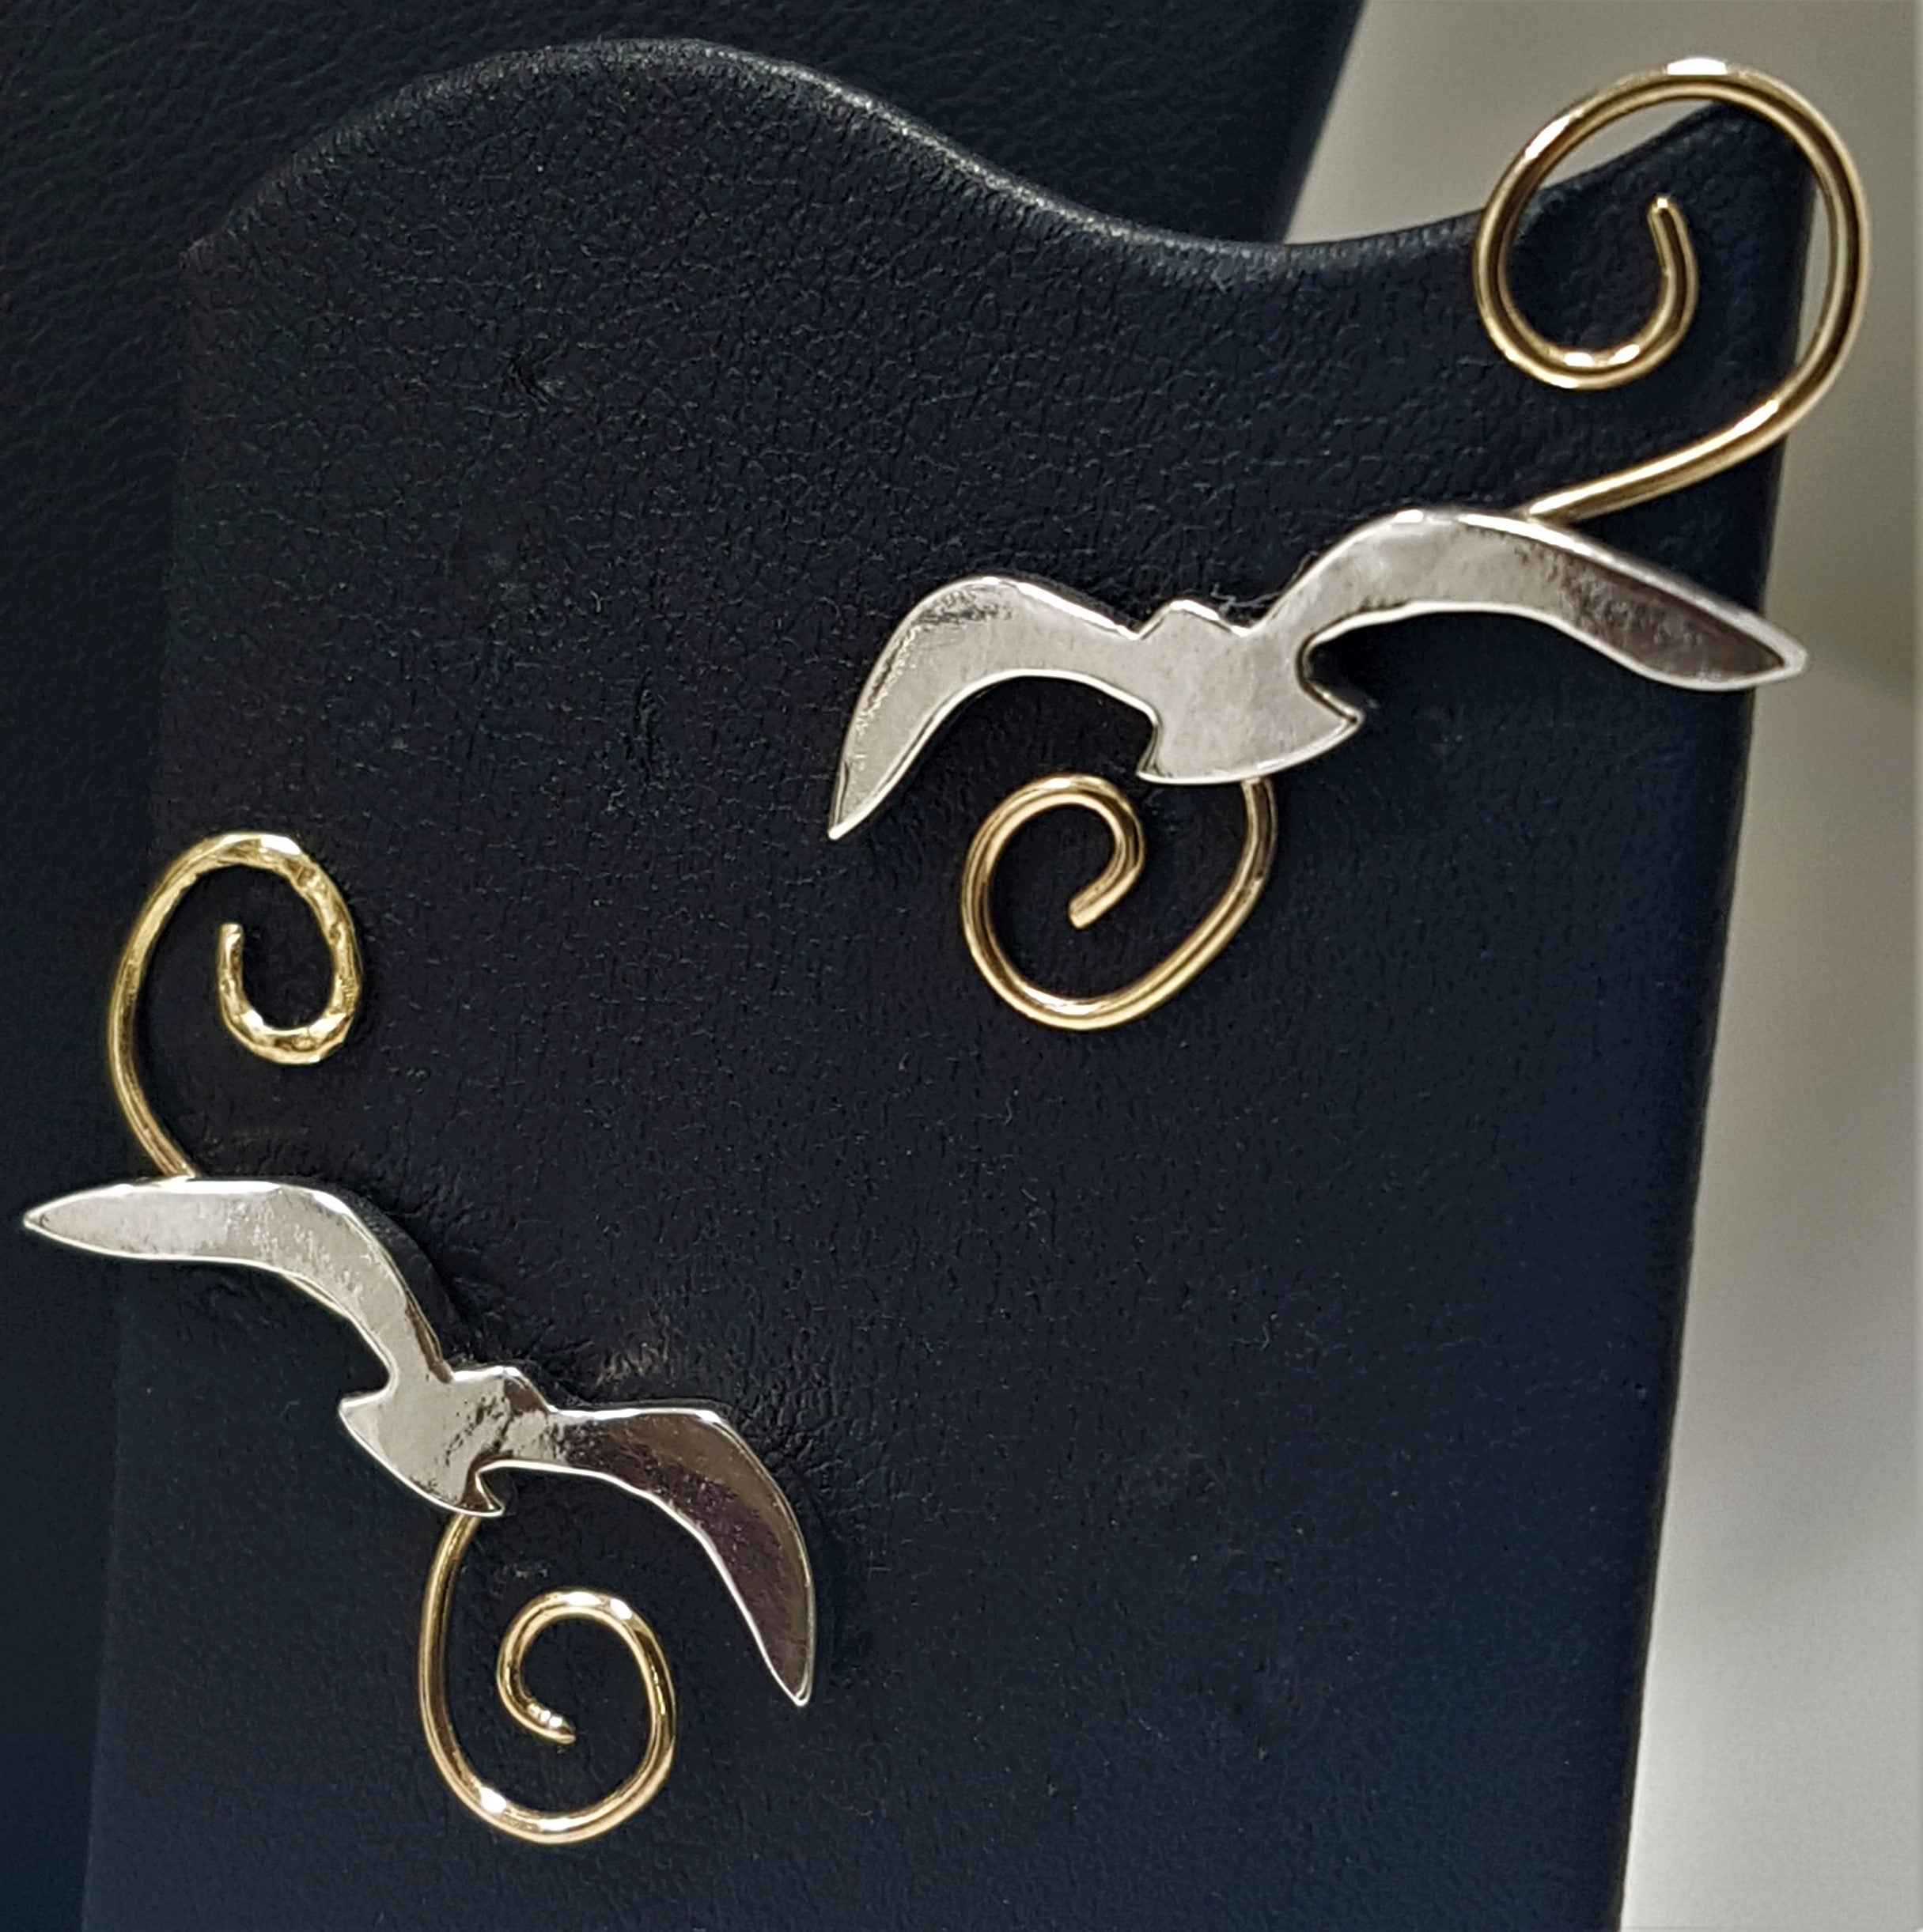 Seagull over Wave Stud Earrings - GOLD/SILVER